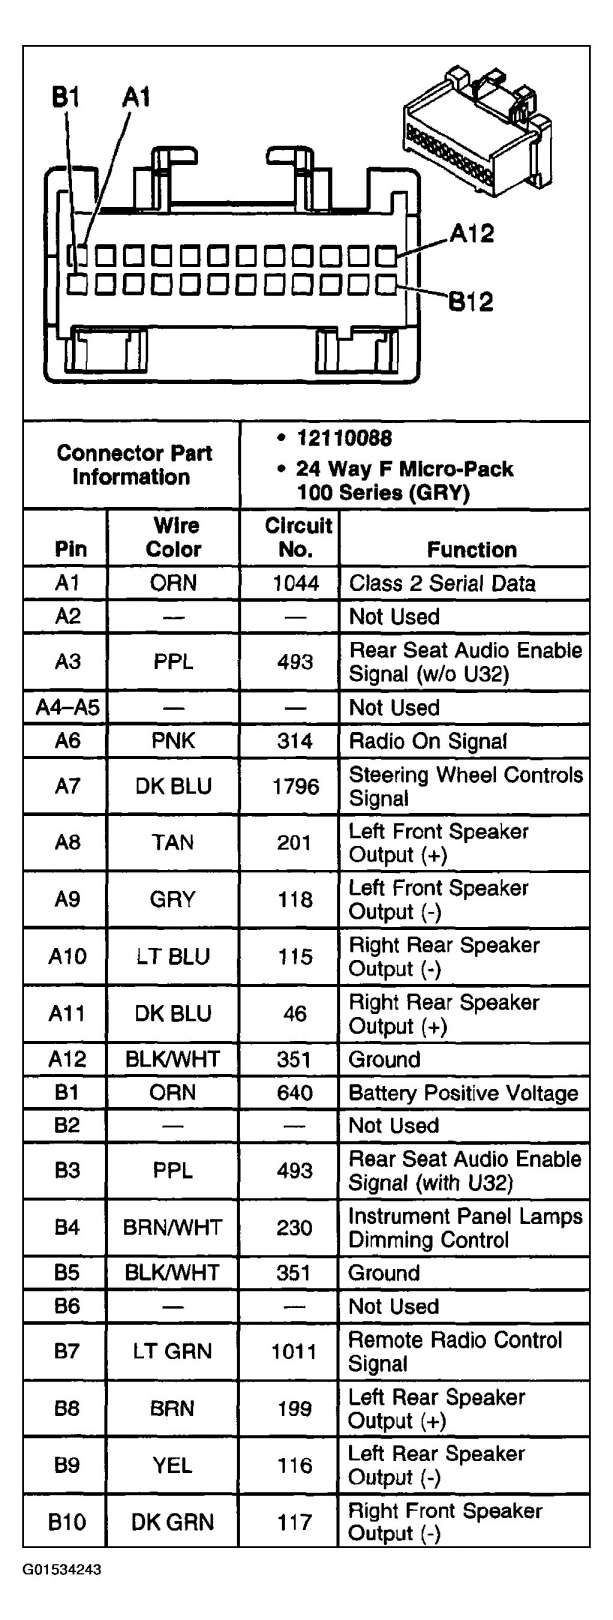 18+ 2003 chevy truck radio wiring diagram - truck diagram - wiringg.net |  chevy trailblazer, chevy malibu, radio  pinterest